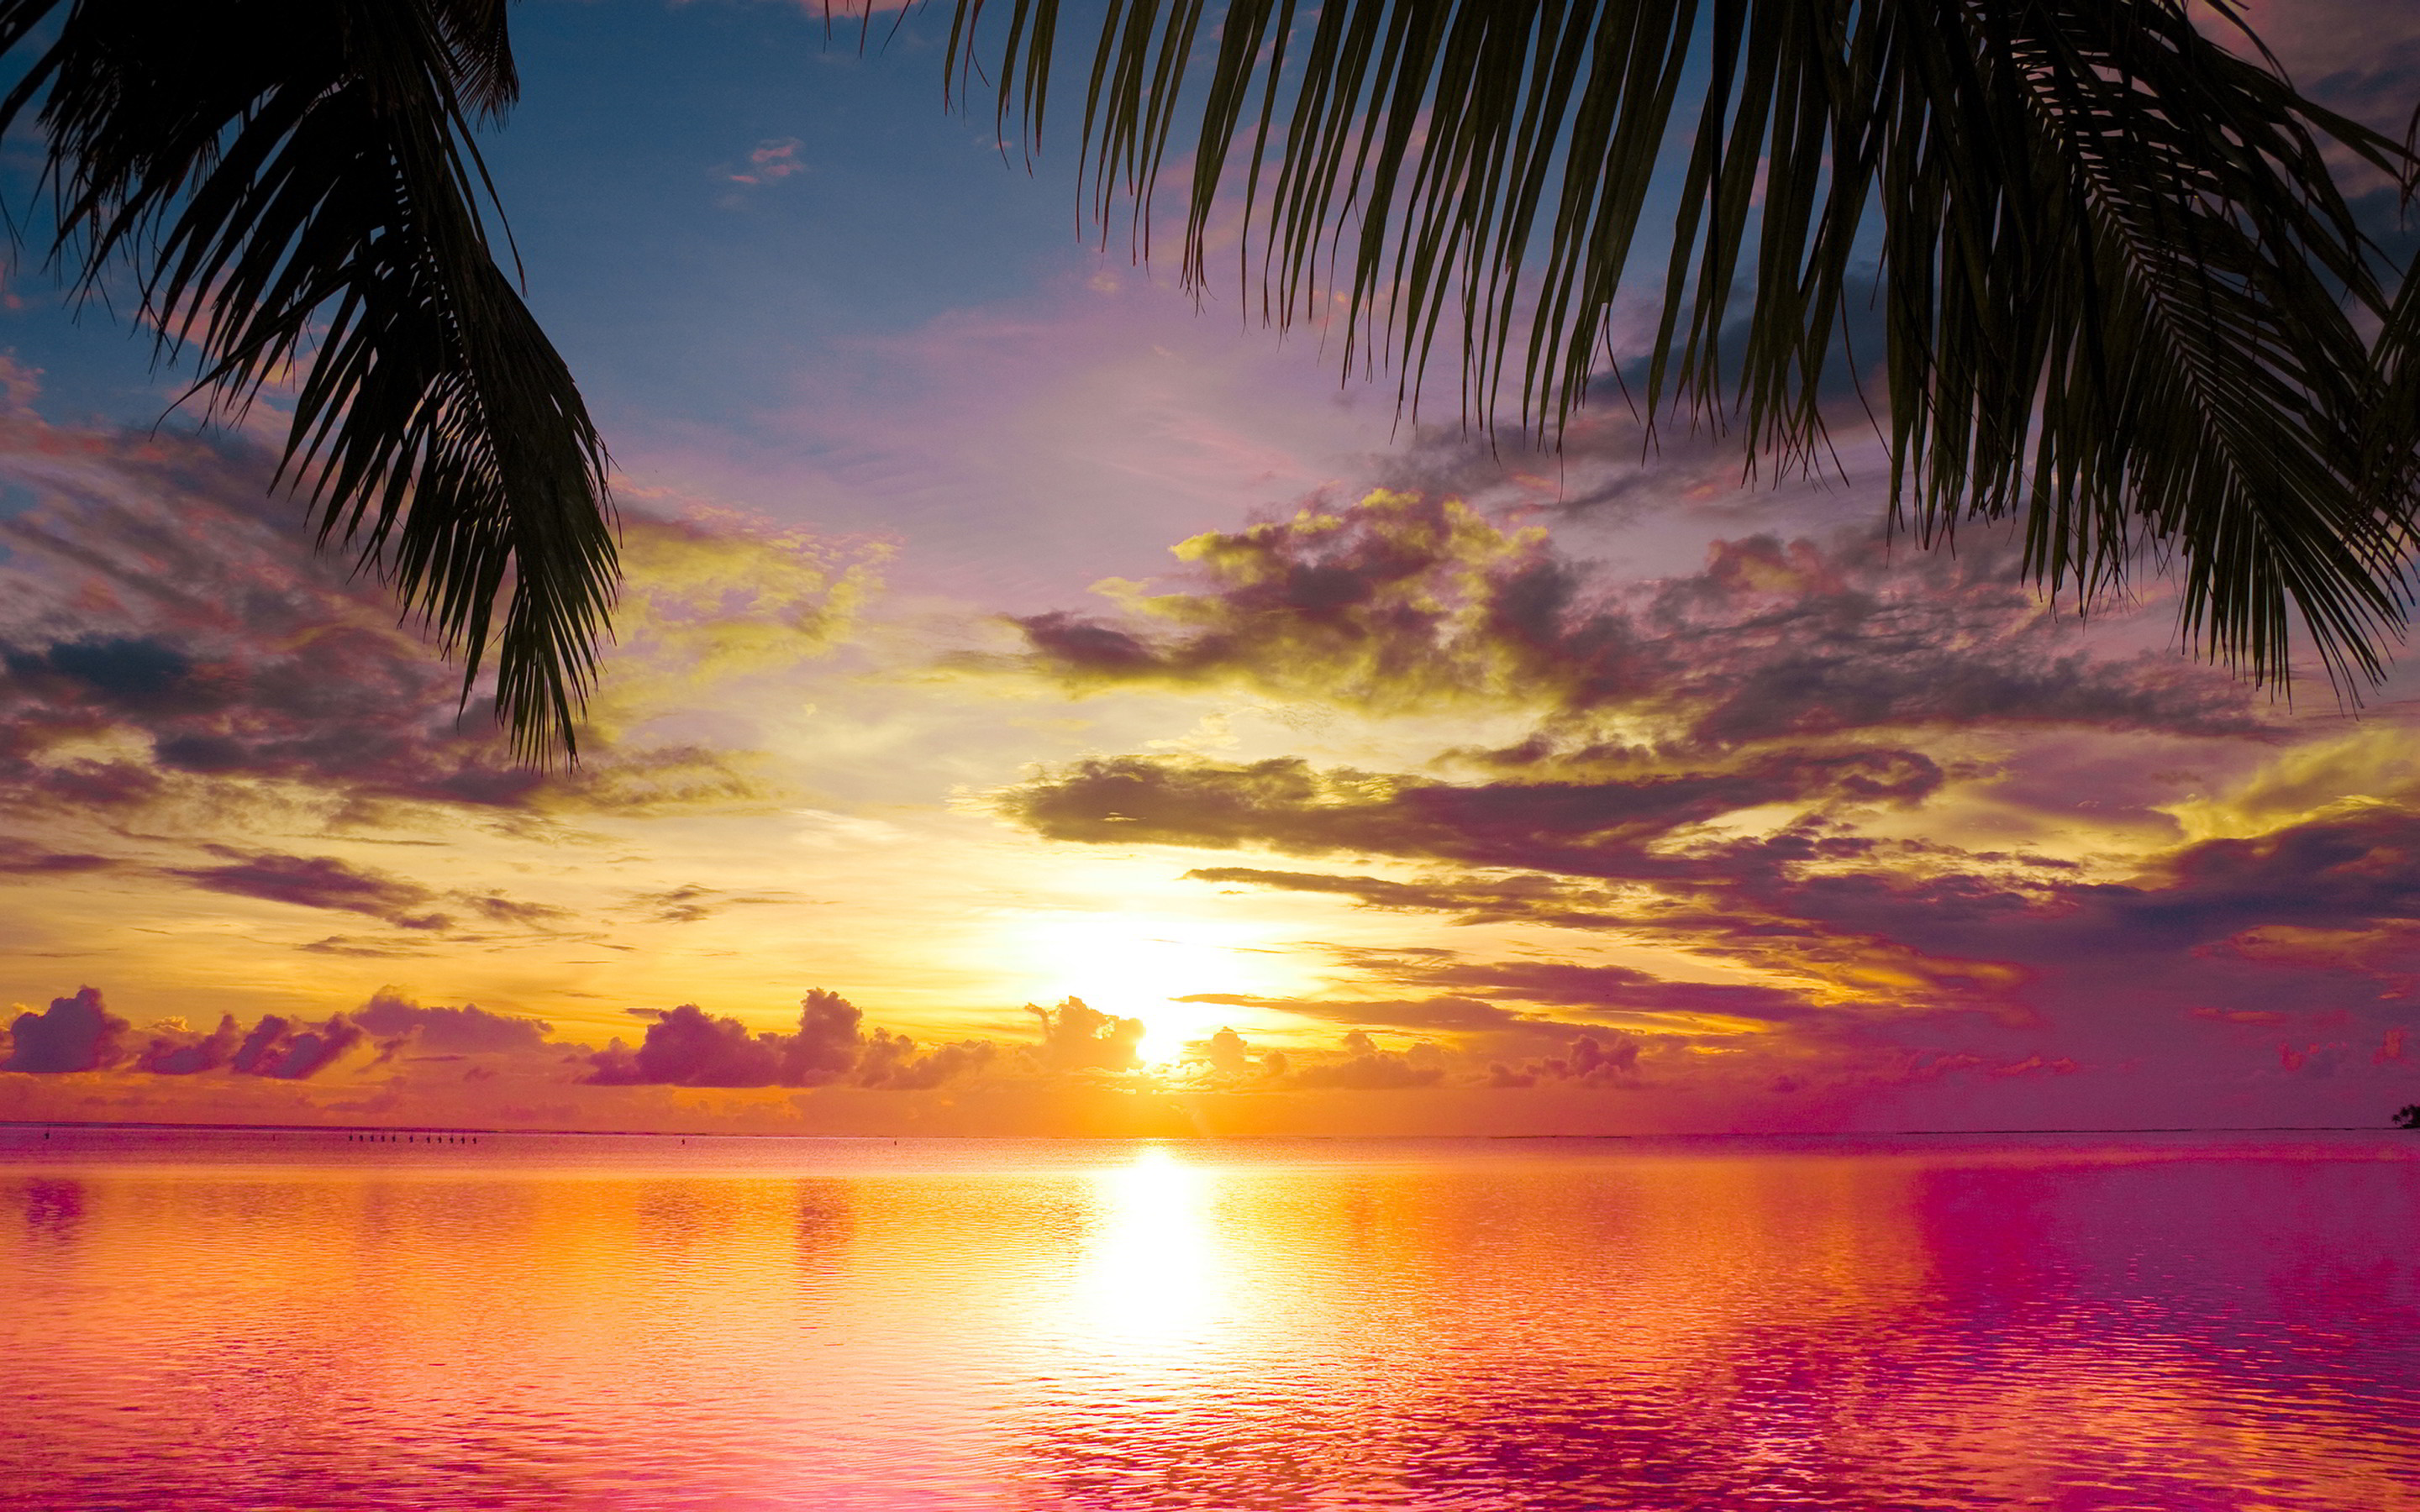 Res: 2880x1800, 1000+ ideas about Sunset Beach on Pinterest Sunsets - HD Wallpapers